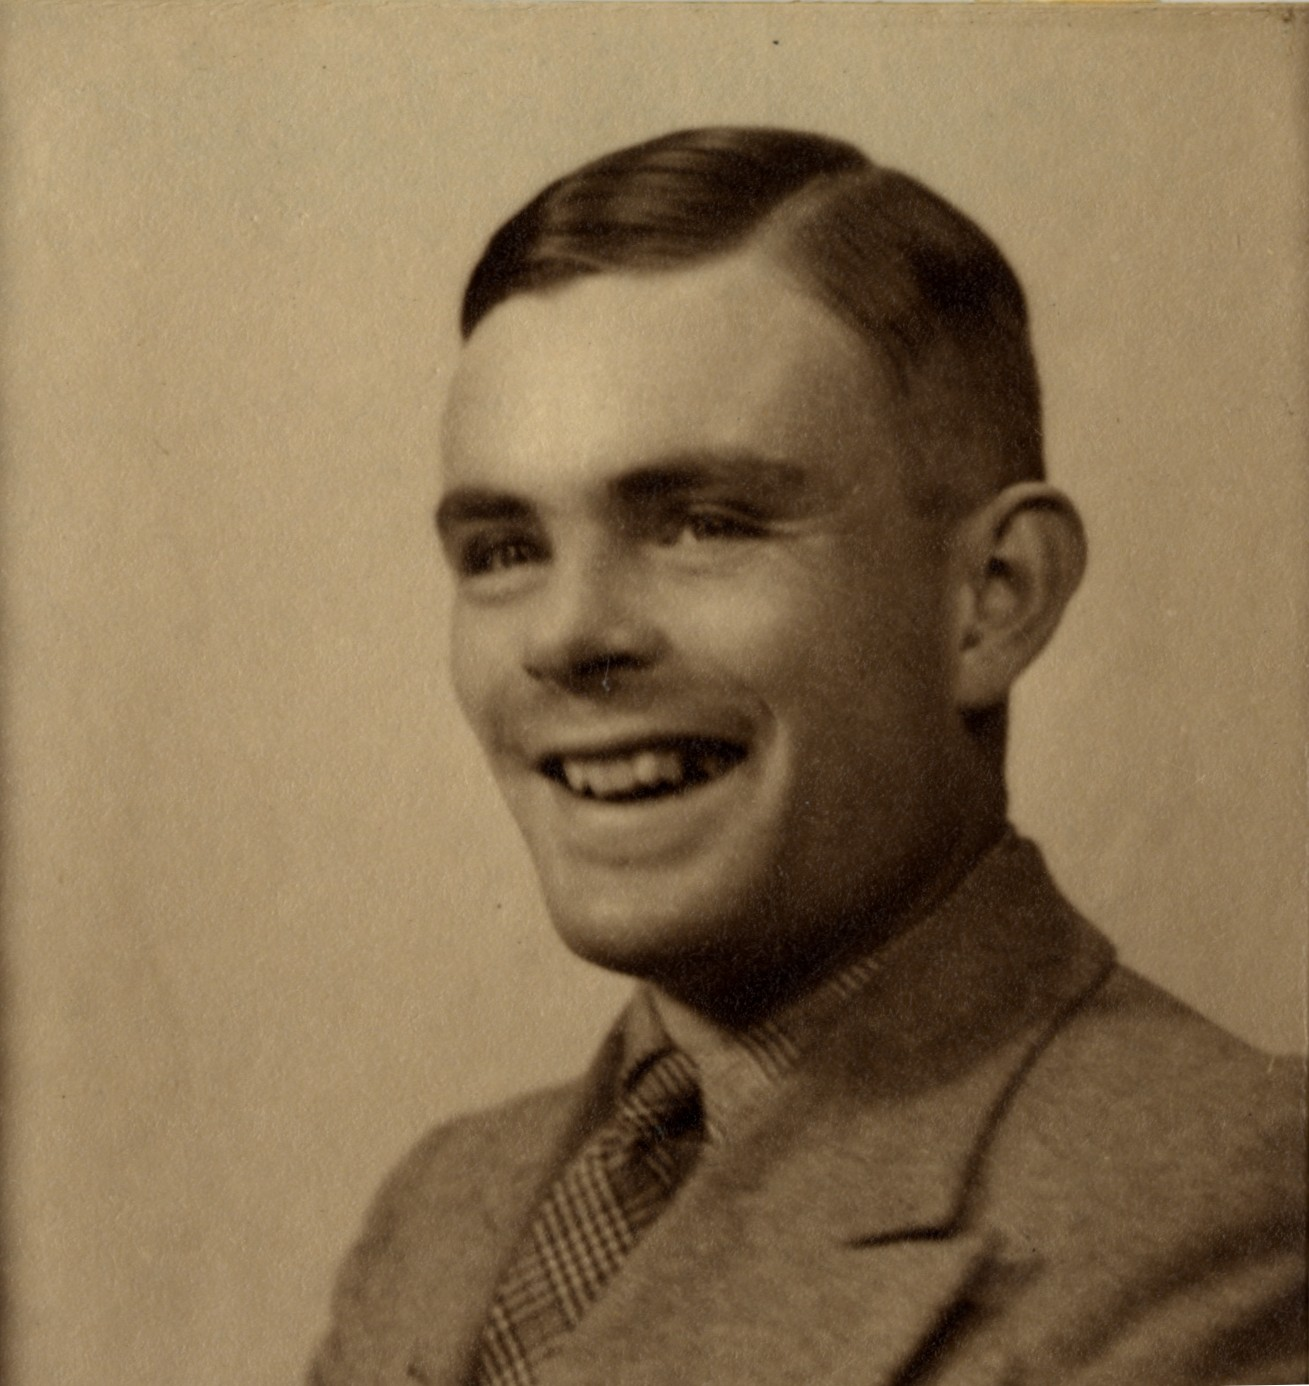 Alan Mathison Turing passport-style photograph [AMT/K/7/11]